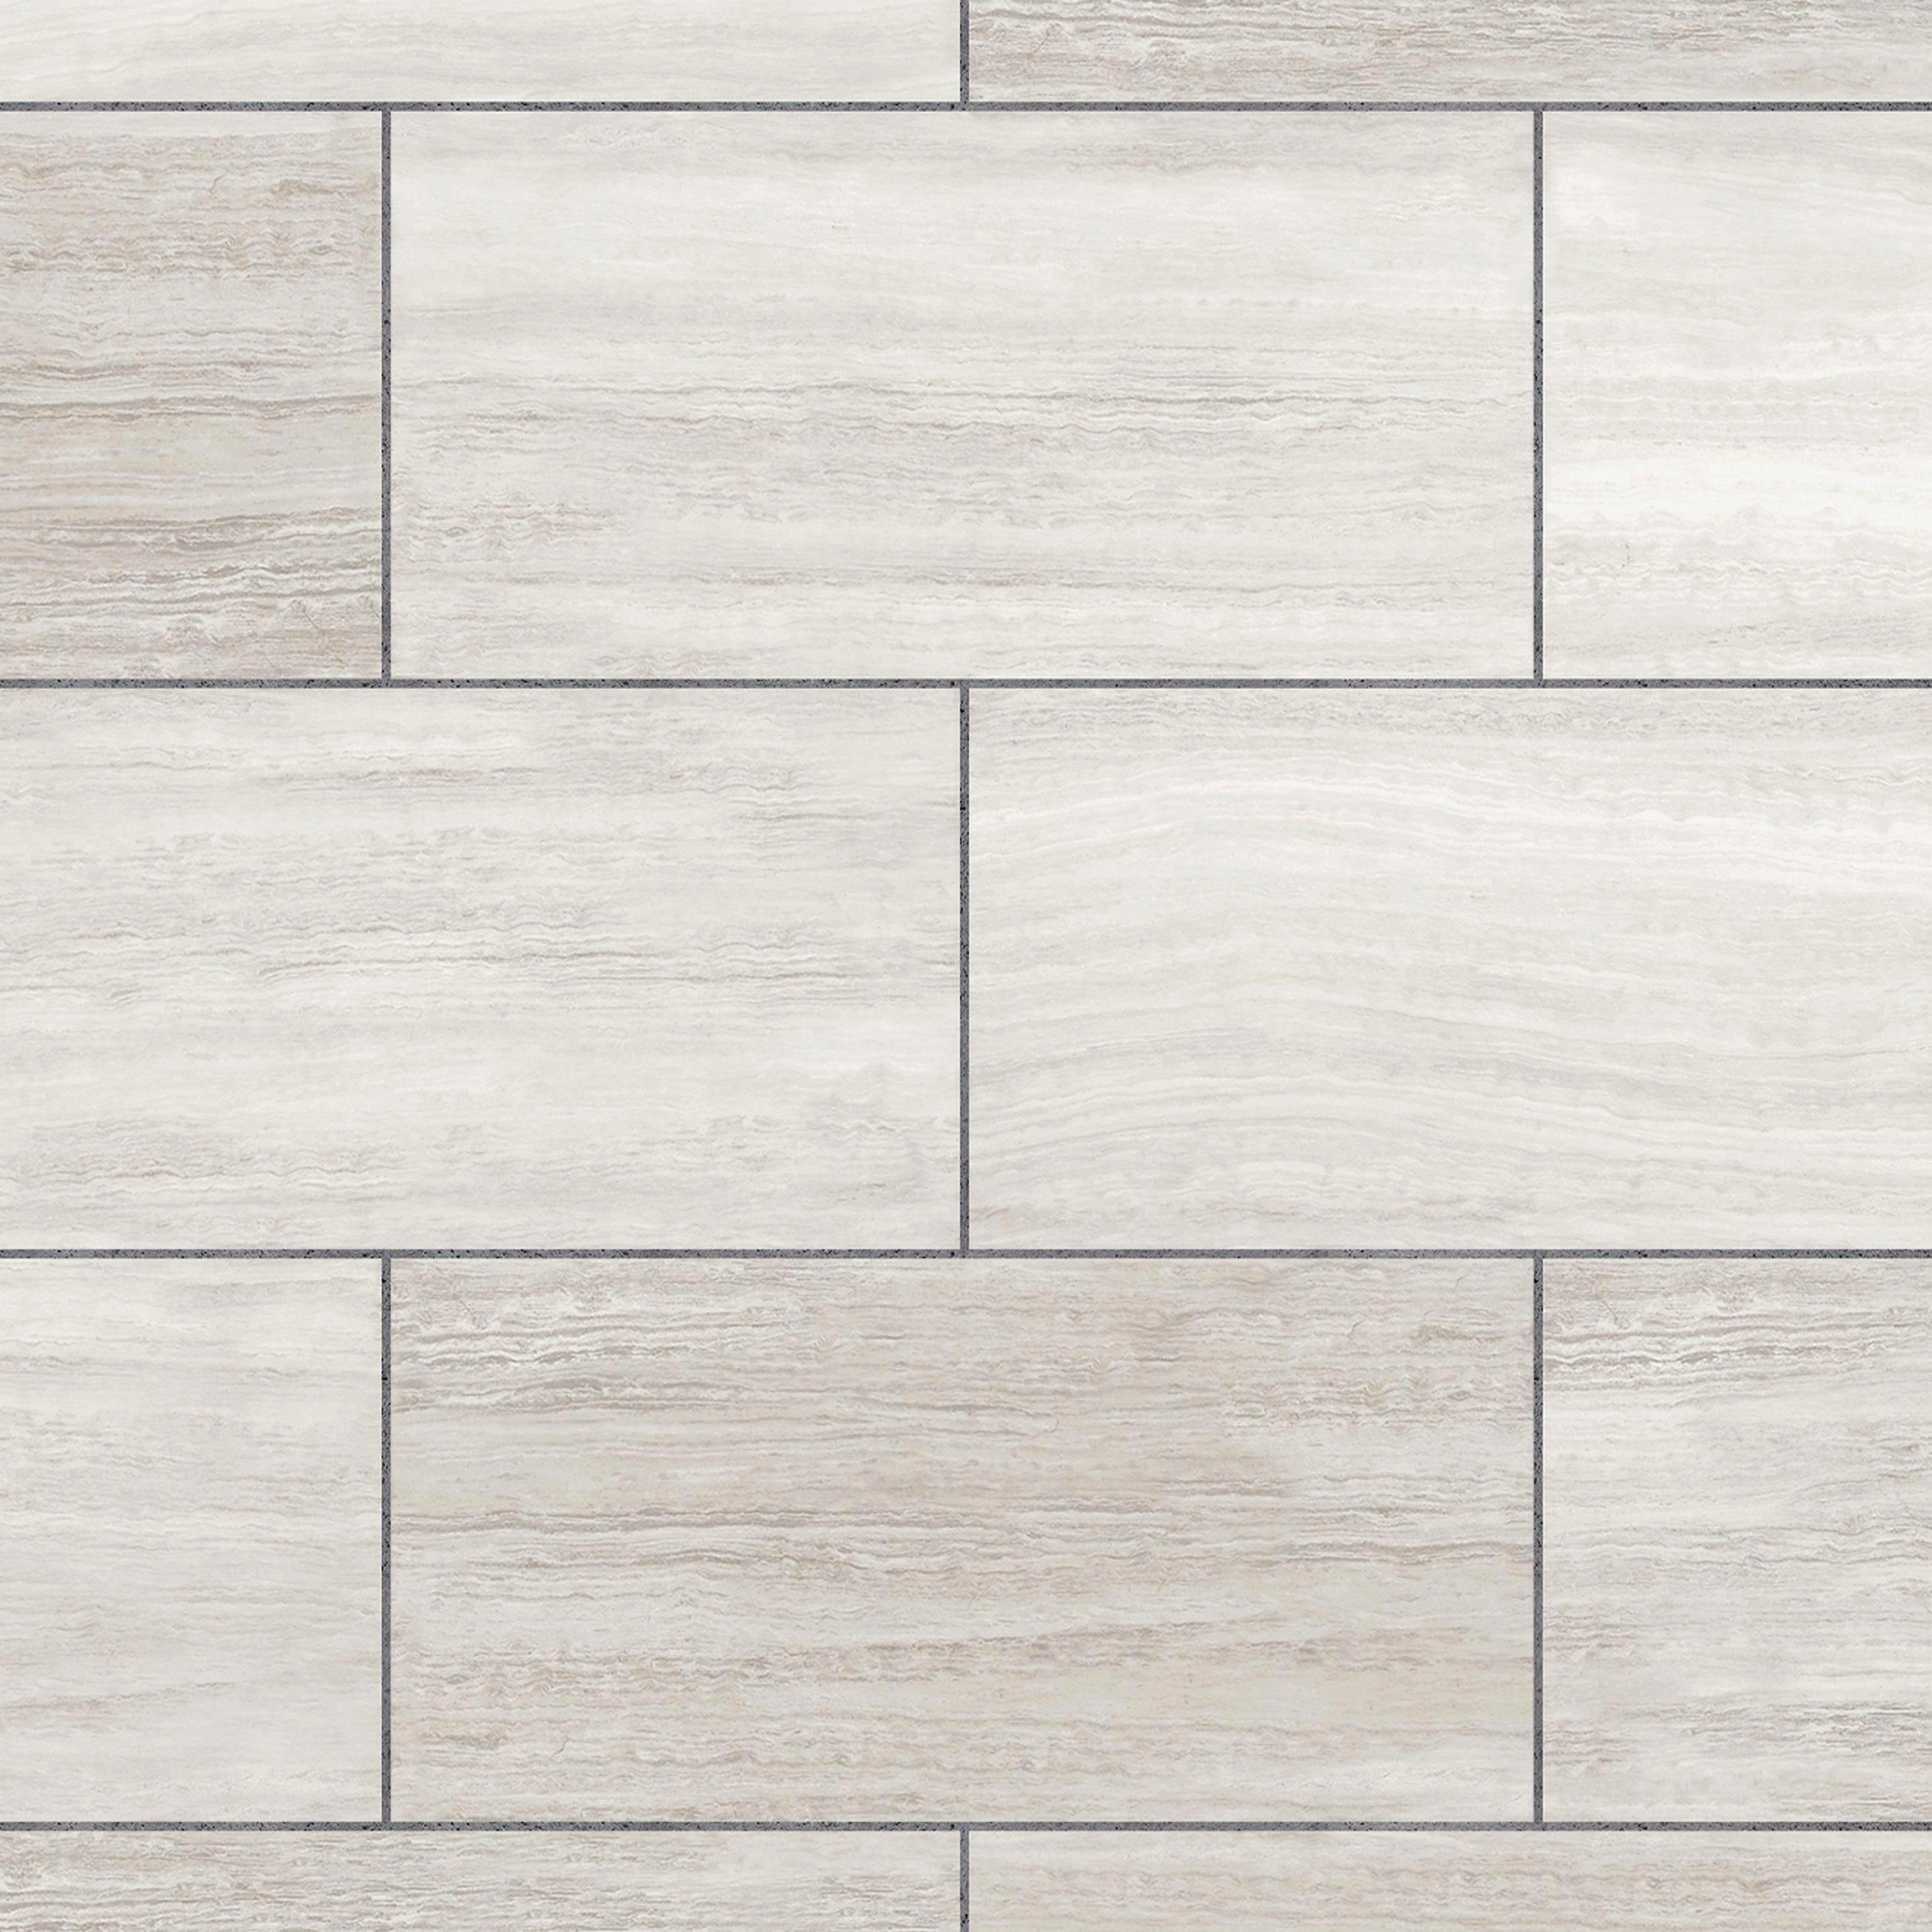 White Grouted Rigid Core Luxury Vinyl Tile Cork Back In 2020